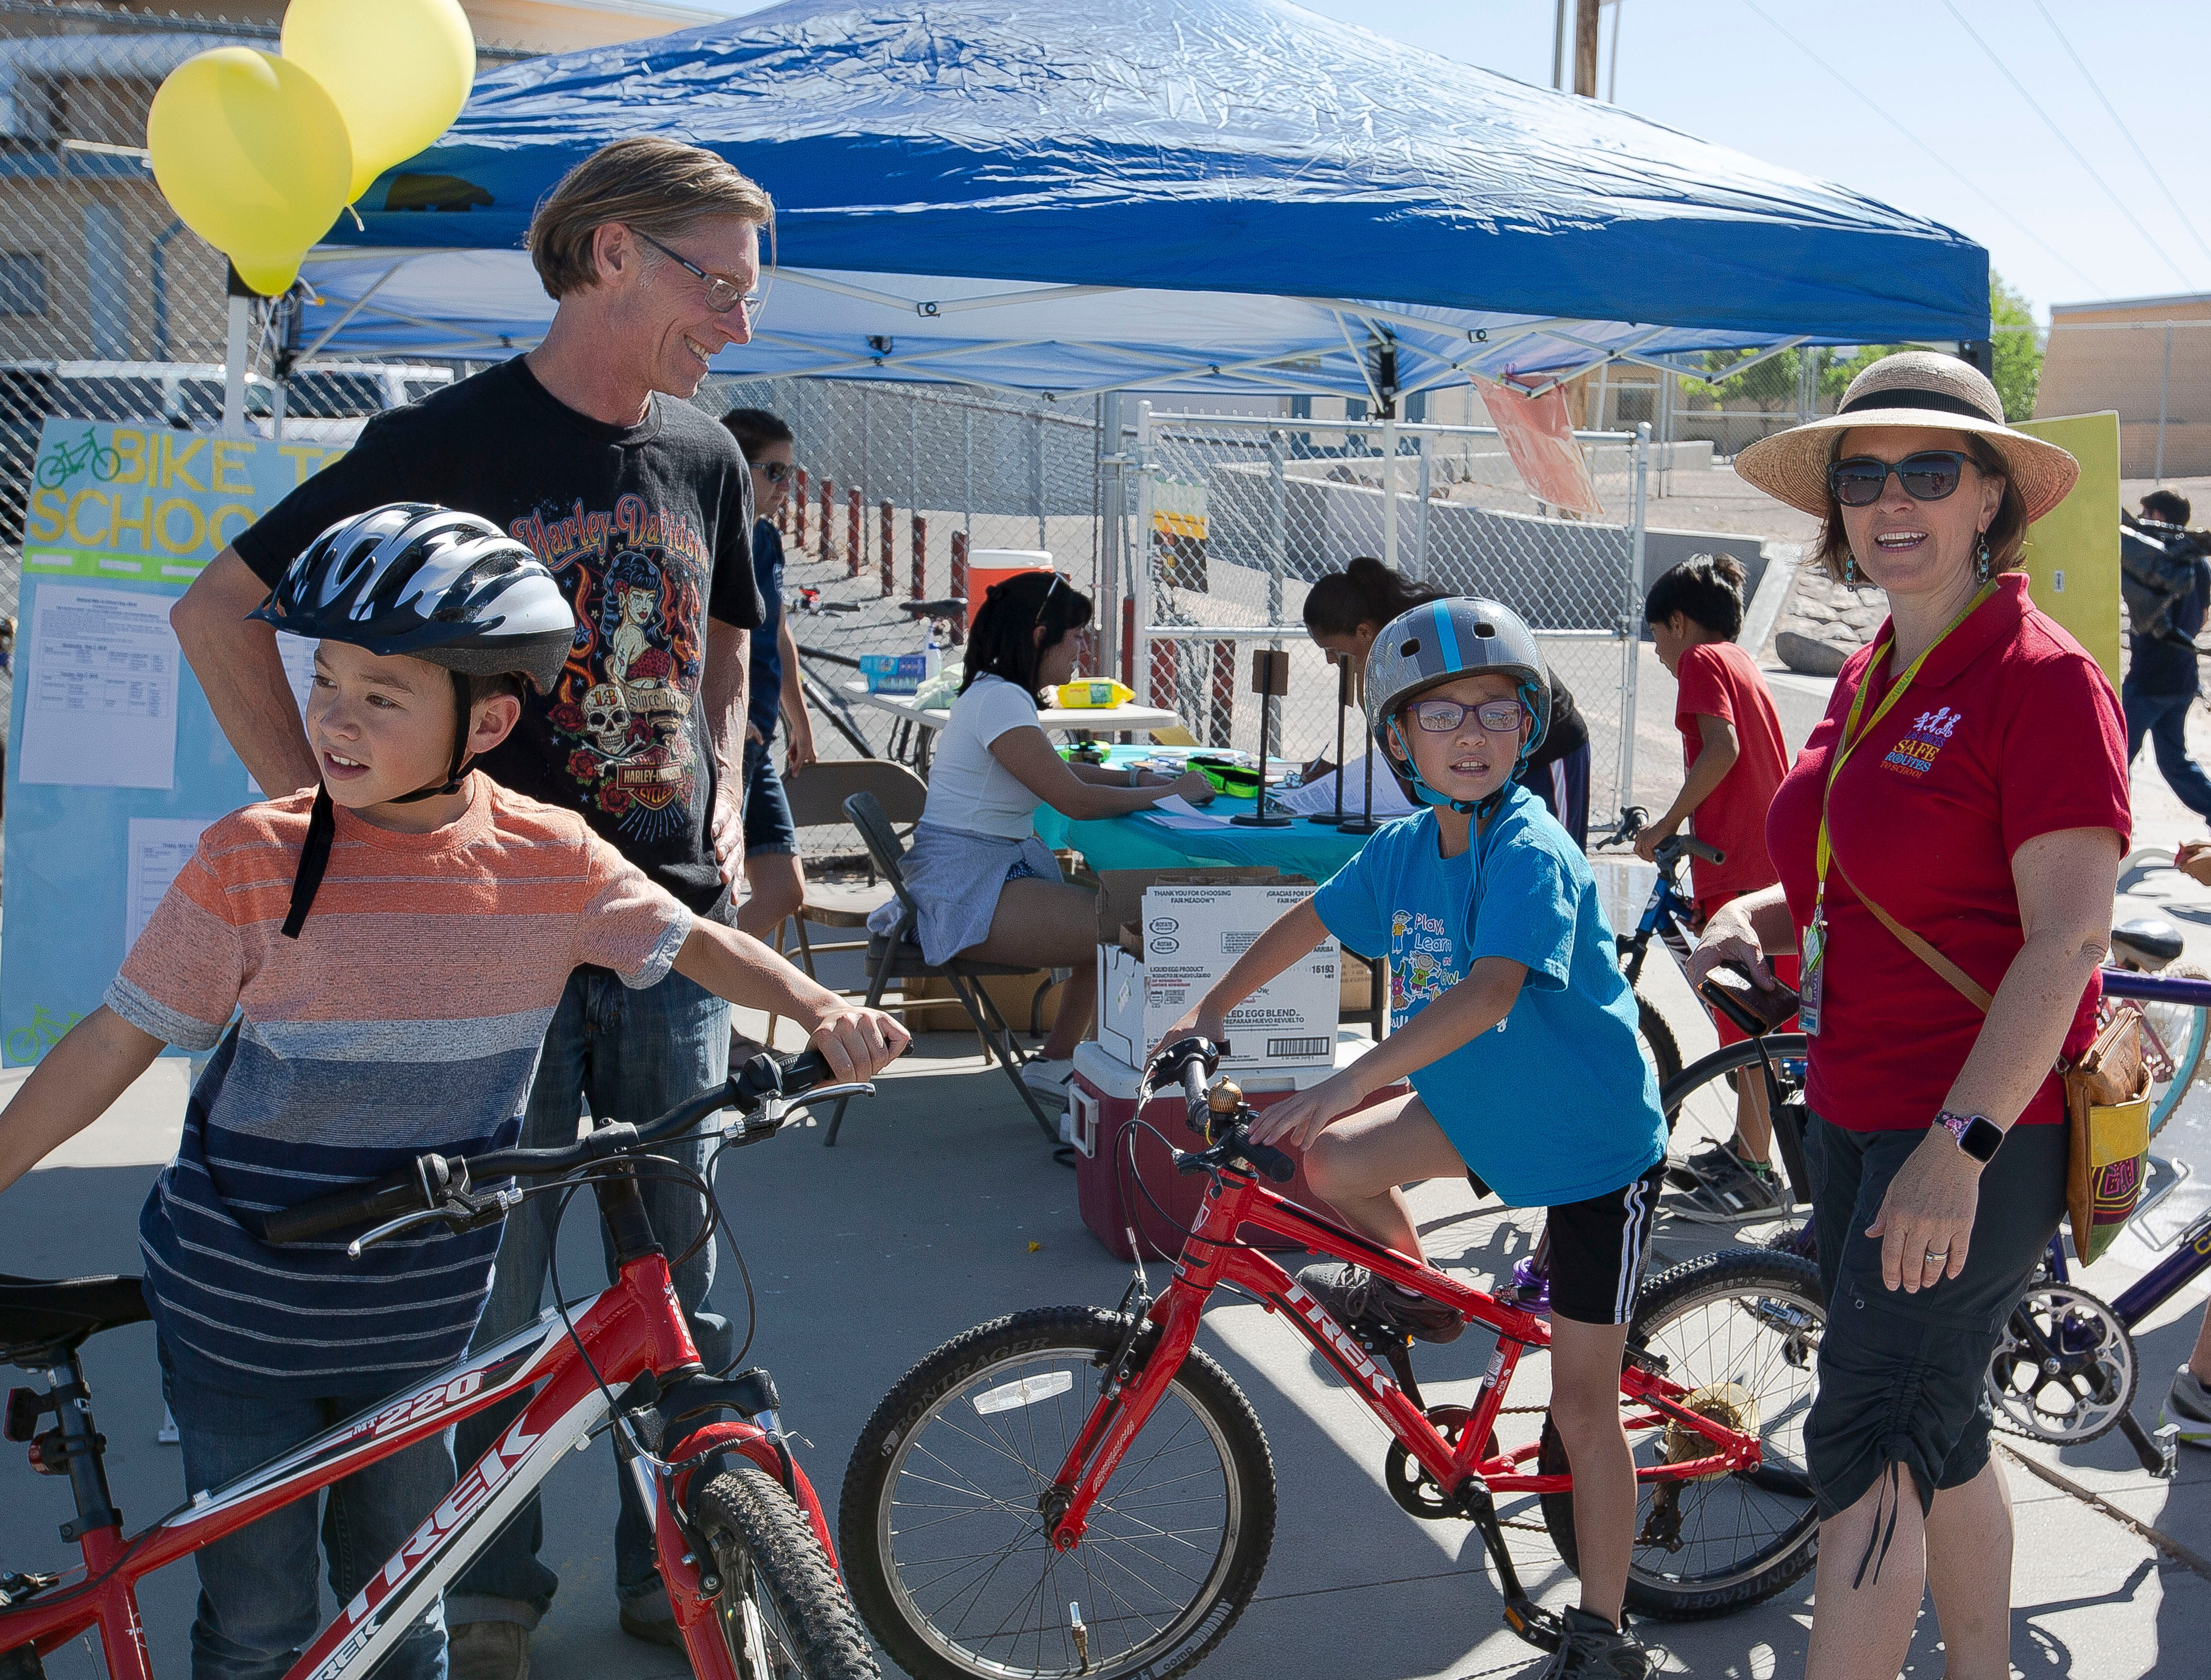 Waylon Yerxa, 10, and his twin sister Marley,  often bike to school together. Their father, Brad Yerxa, and Safe Routes to School Coordinator Ashleigh Curry, helped the children brush up on bicycle safety at the bike fiesta on Saturday, April 27, 2019.